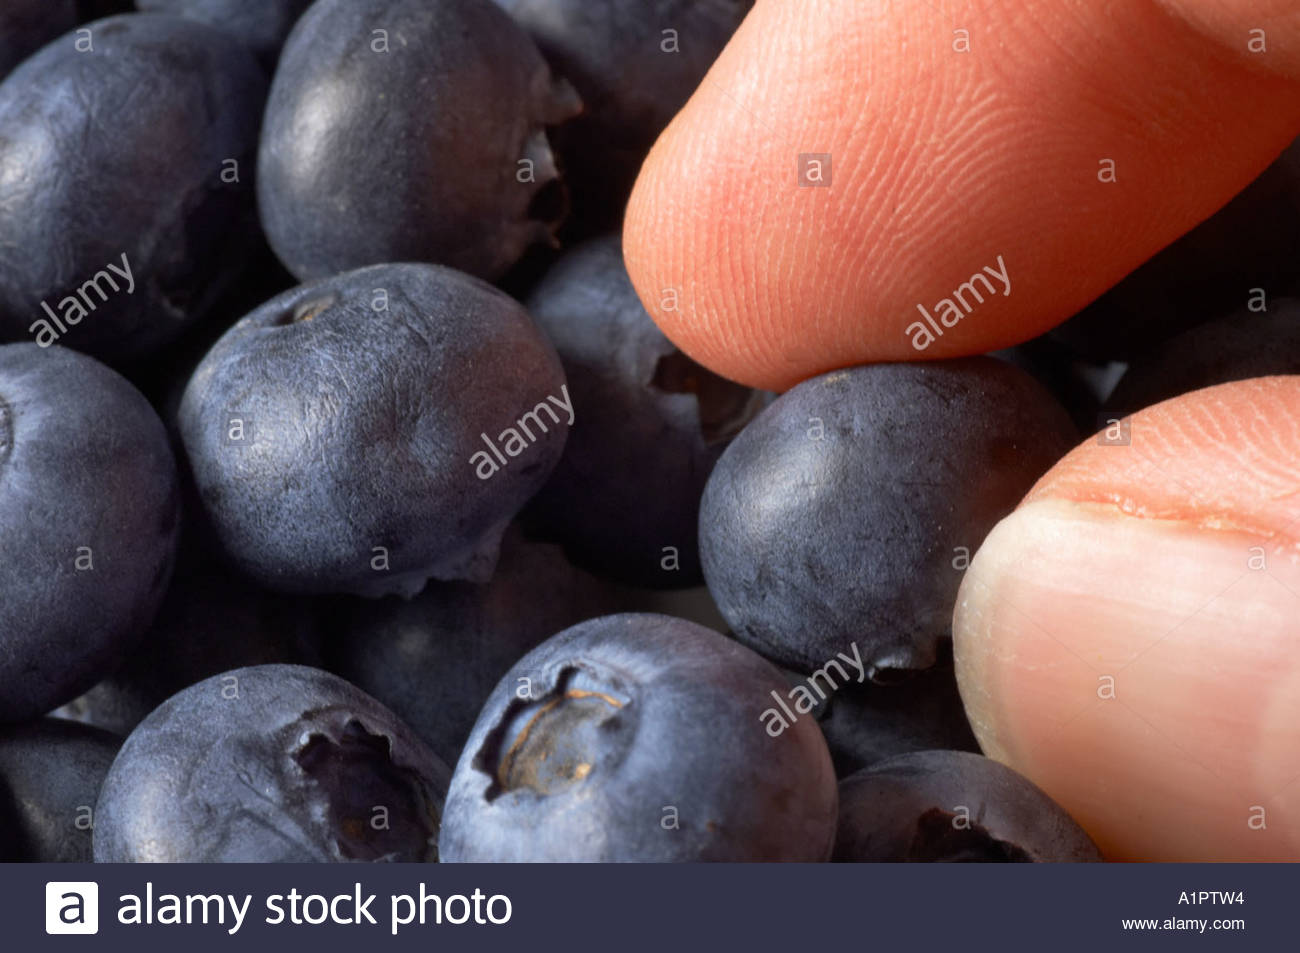 Picking up a blueberry from a dish - Stock Image